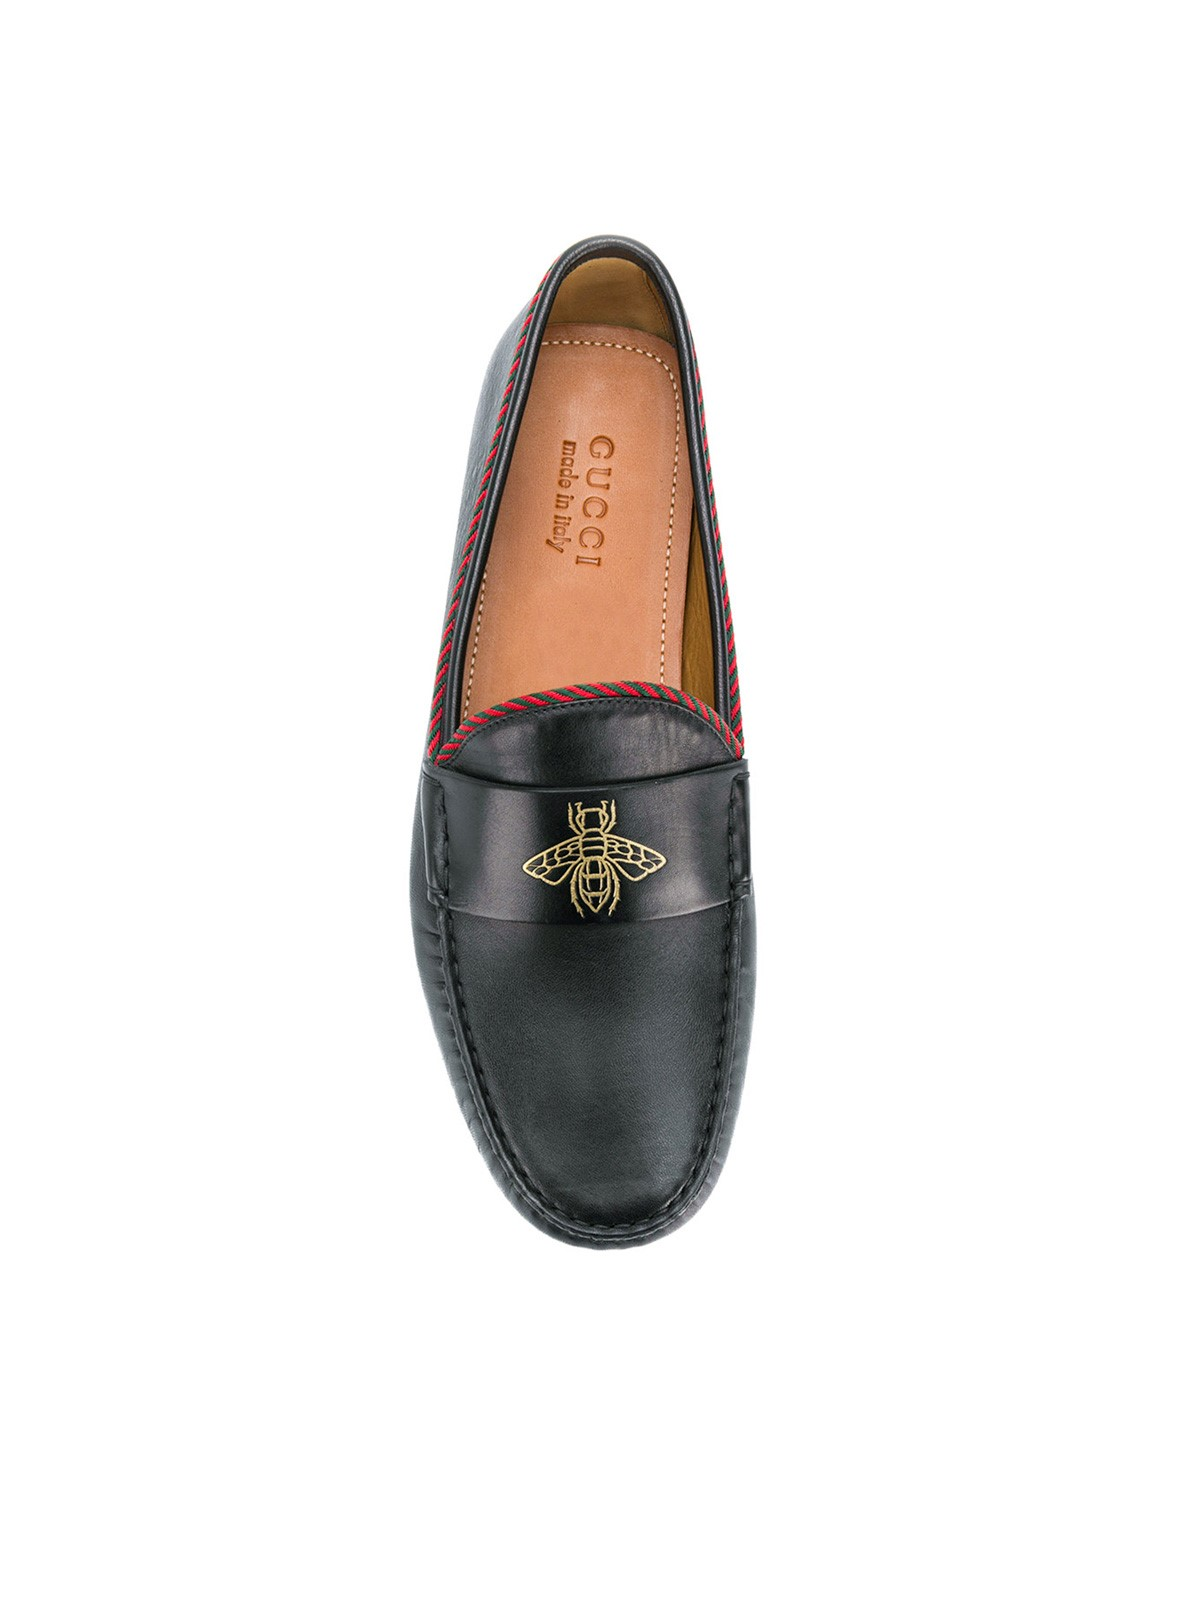 03af2d7a0 gucci LOAFERS BEE DETAIL available on montiboutique.com - 21642